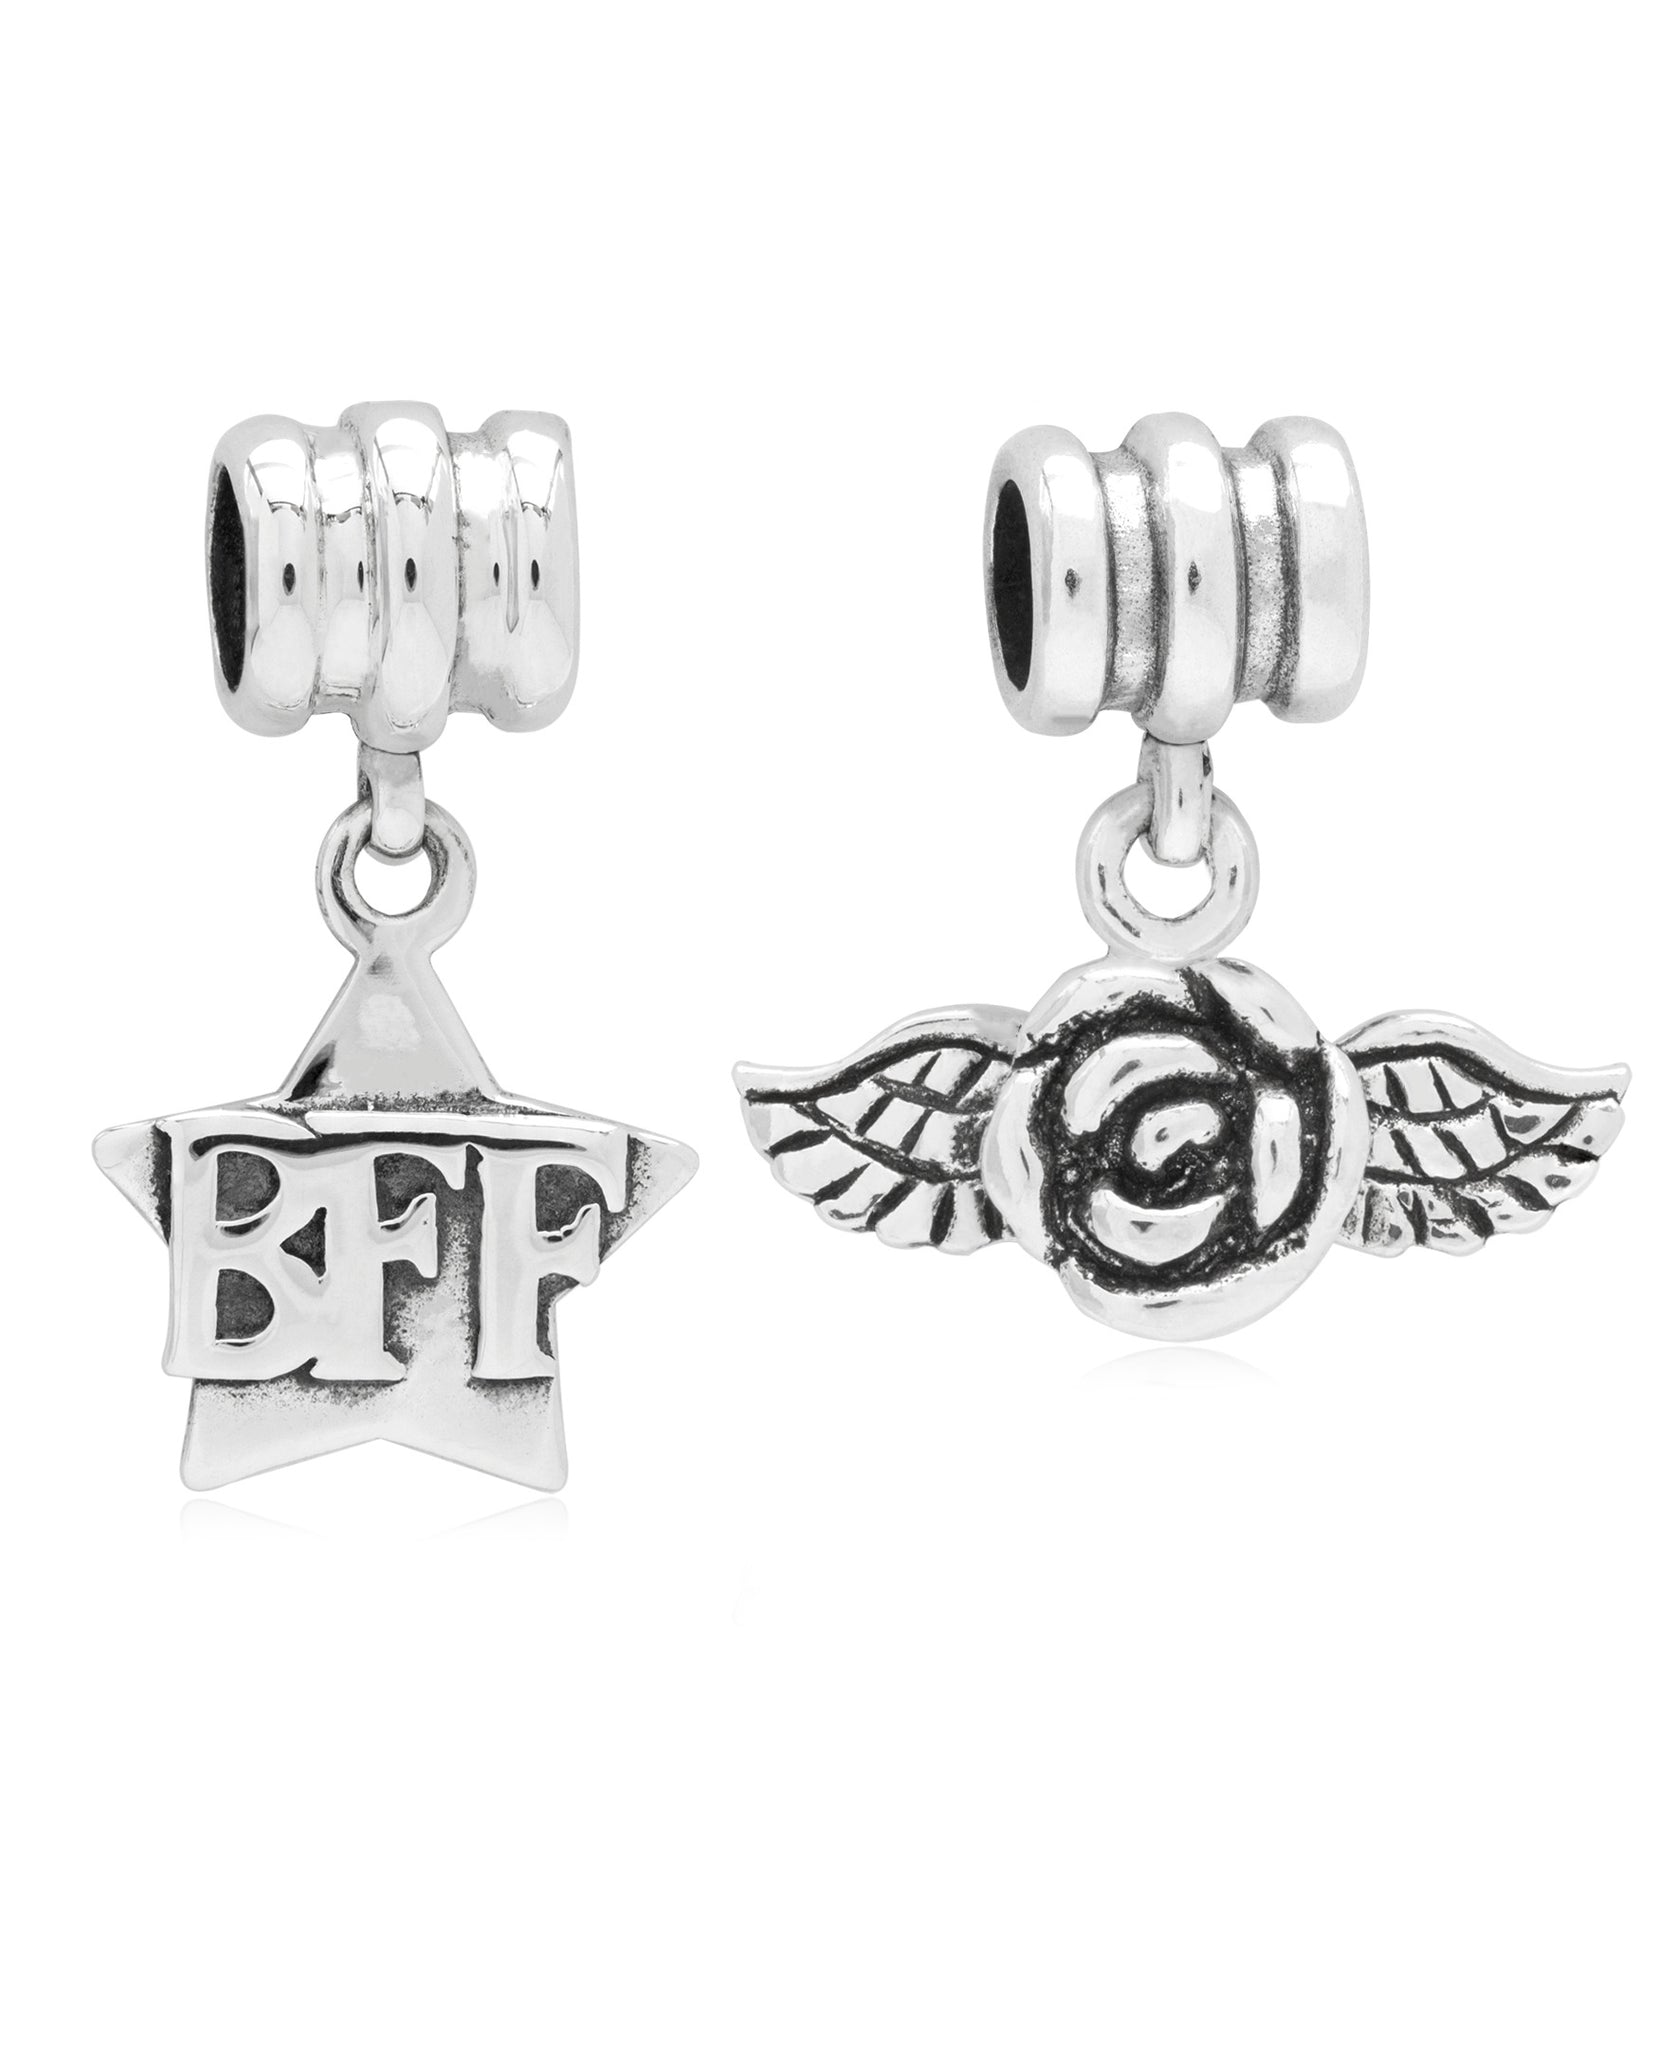 Children's Sterling Silver BFF & Rose Drop Charms - Set of 2 - Rhona Sutton Jewellery